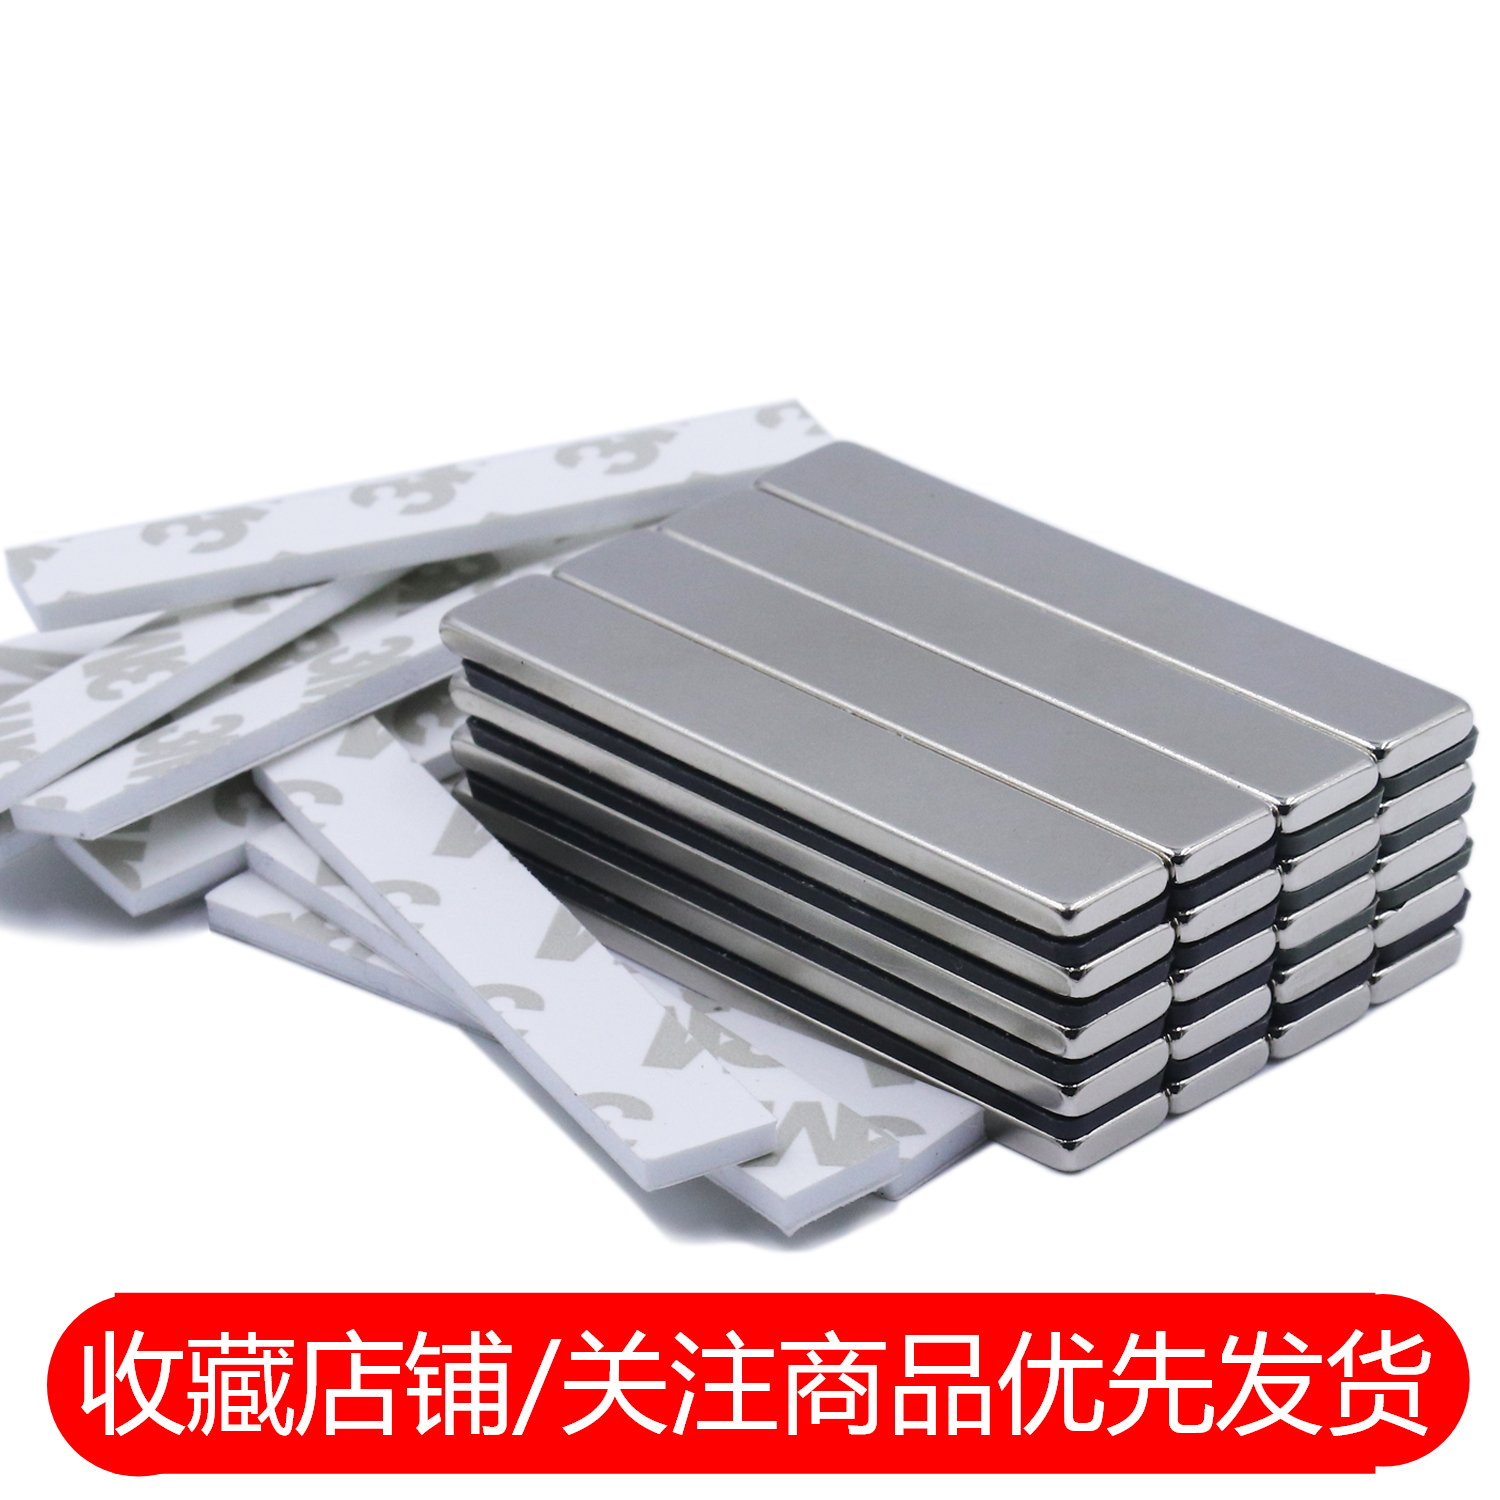 Magnet strong magnet absorber strong high-strength bar 50 x 10 thickness  2/3/4/5 absorbent iron stone rectangle